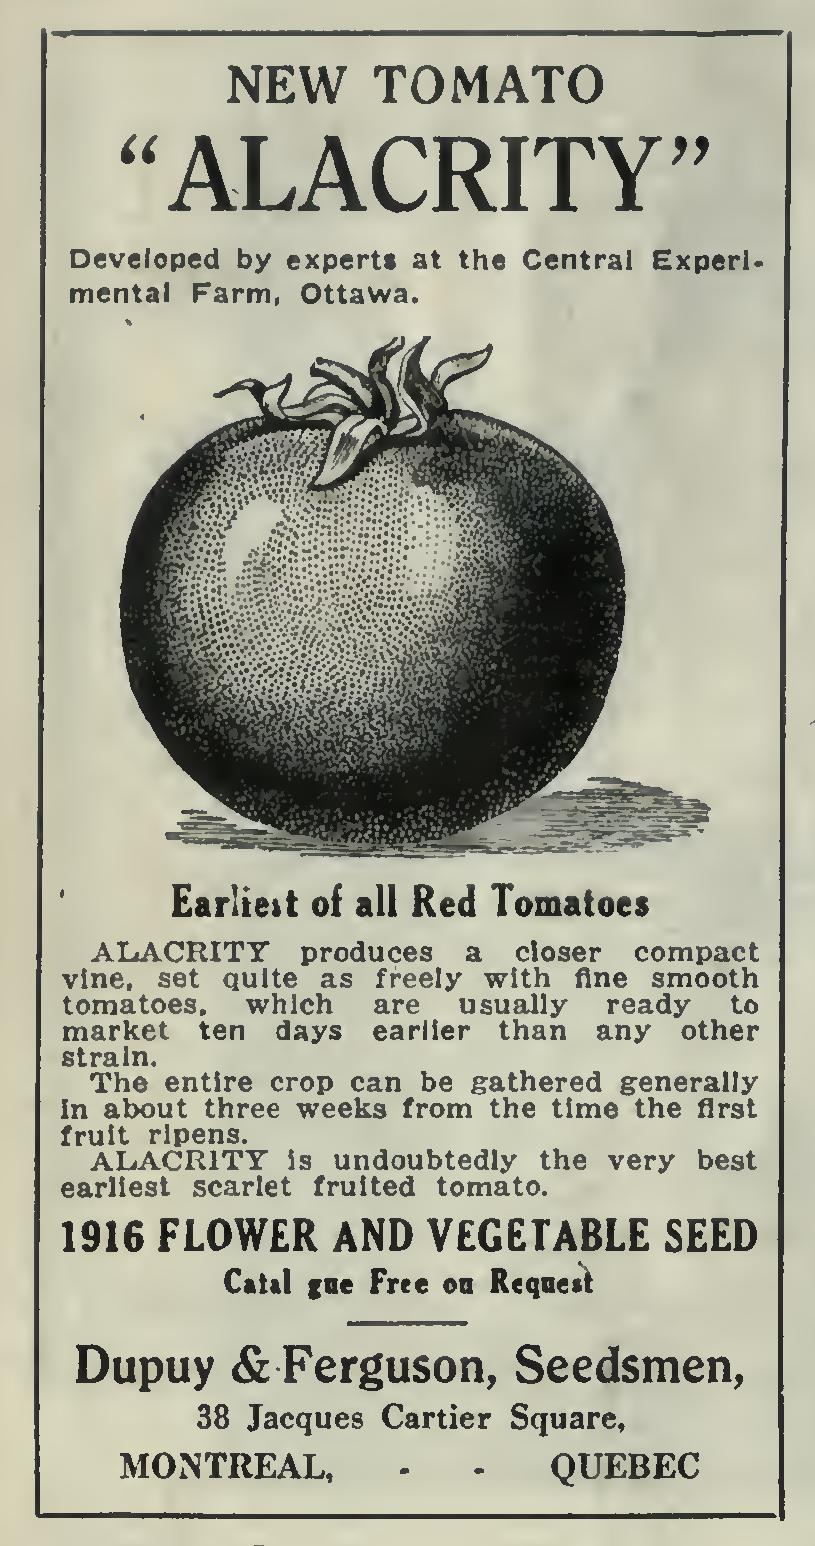 The 100-Year-Old Tomato - Alacrity